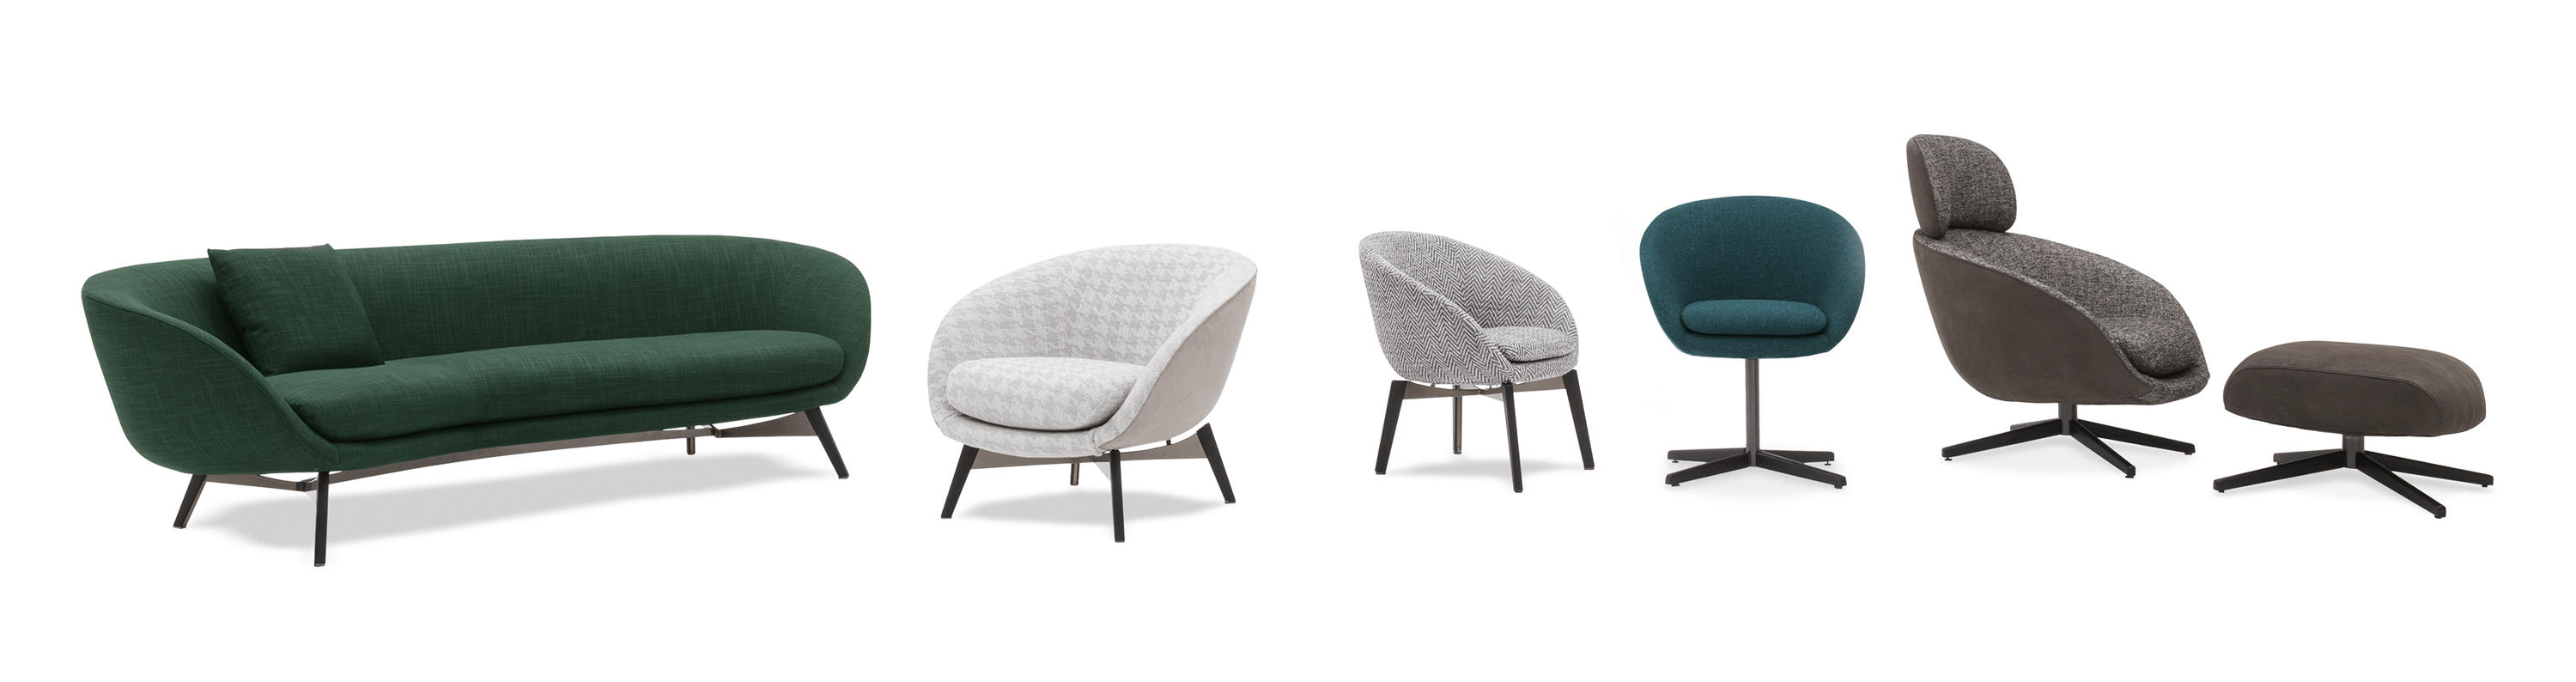 Russell Lounge Chairs From Minotti Architonic